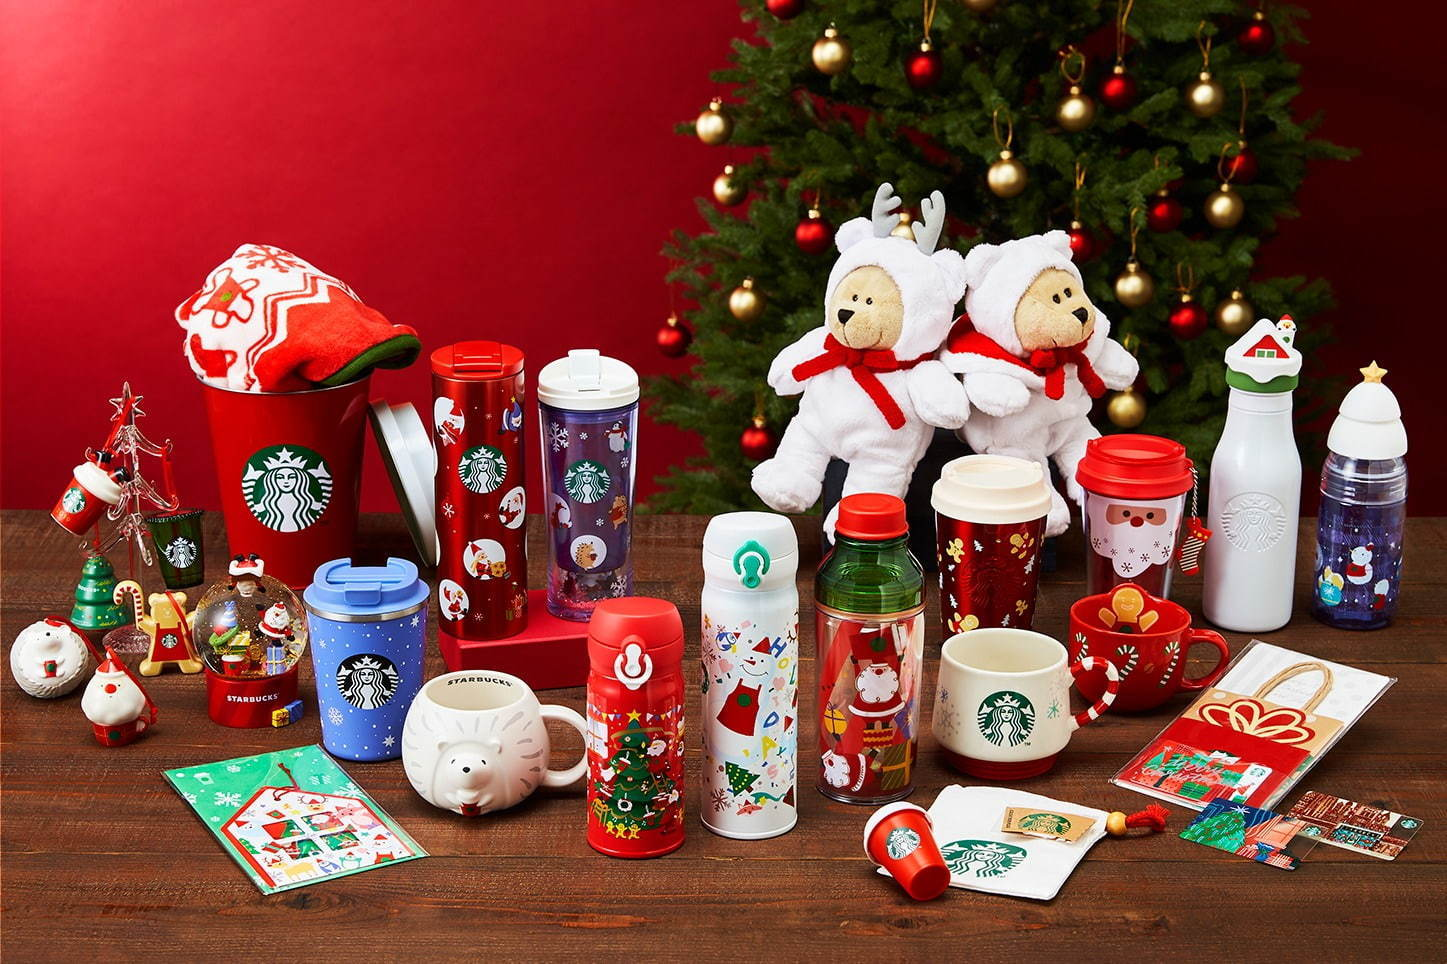 Starbucks Japan Christmas Tumbler and Mug 2019 - Japan Web ...